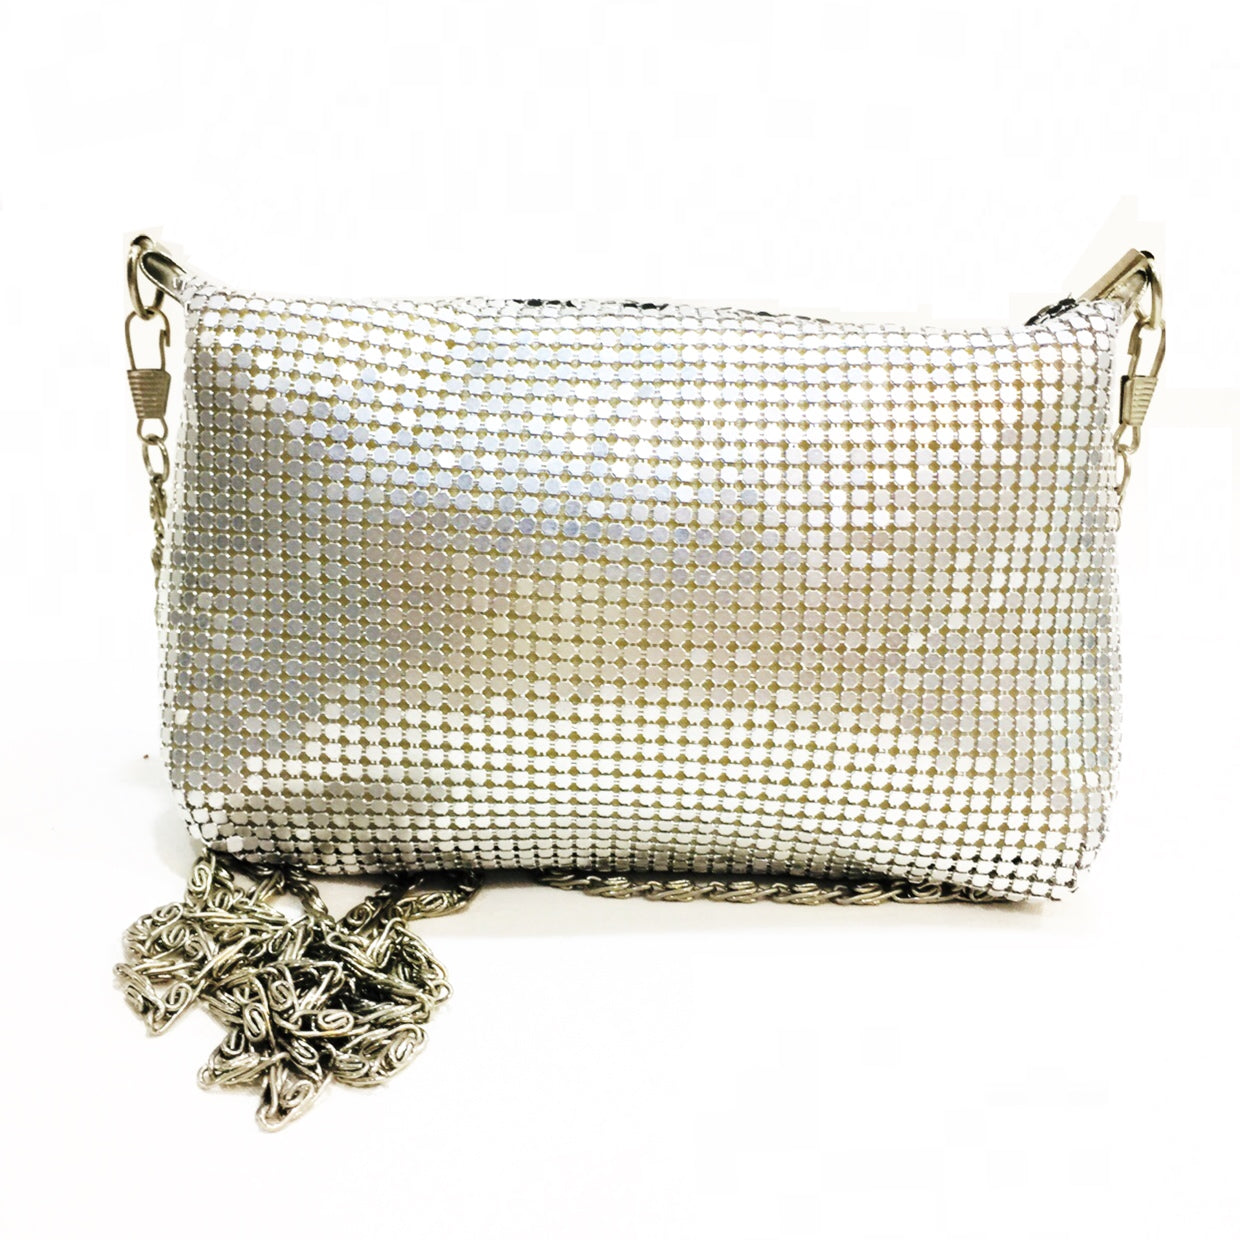 Leopard Mesh Silver Clutch Bag